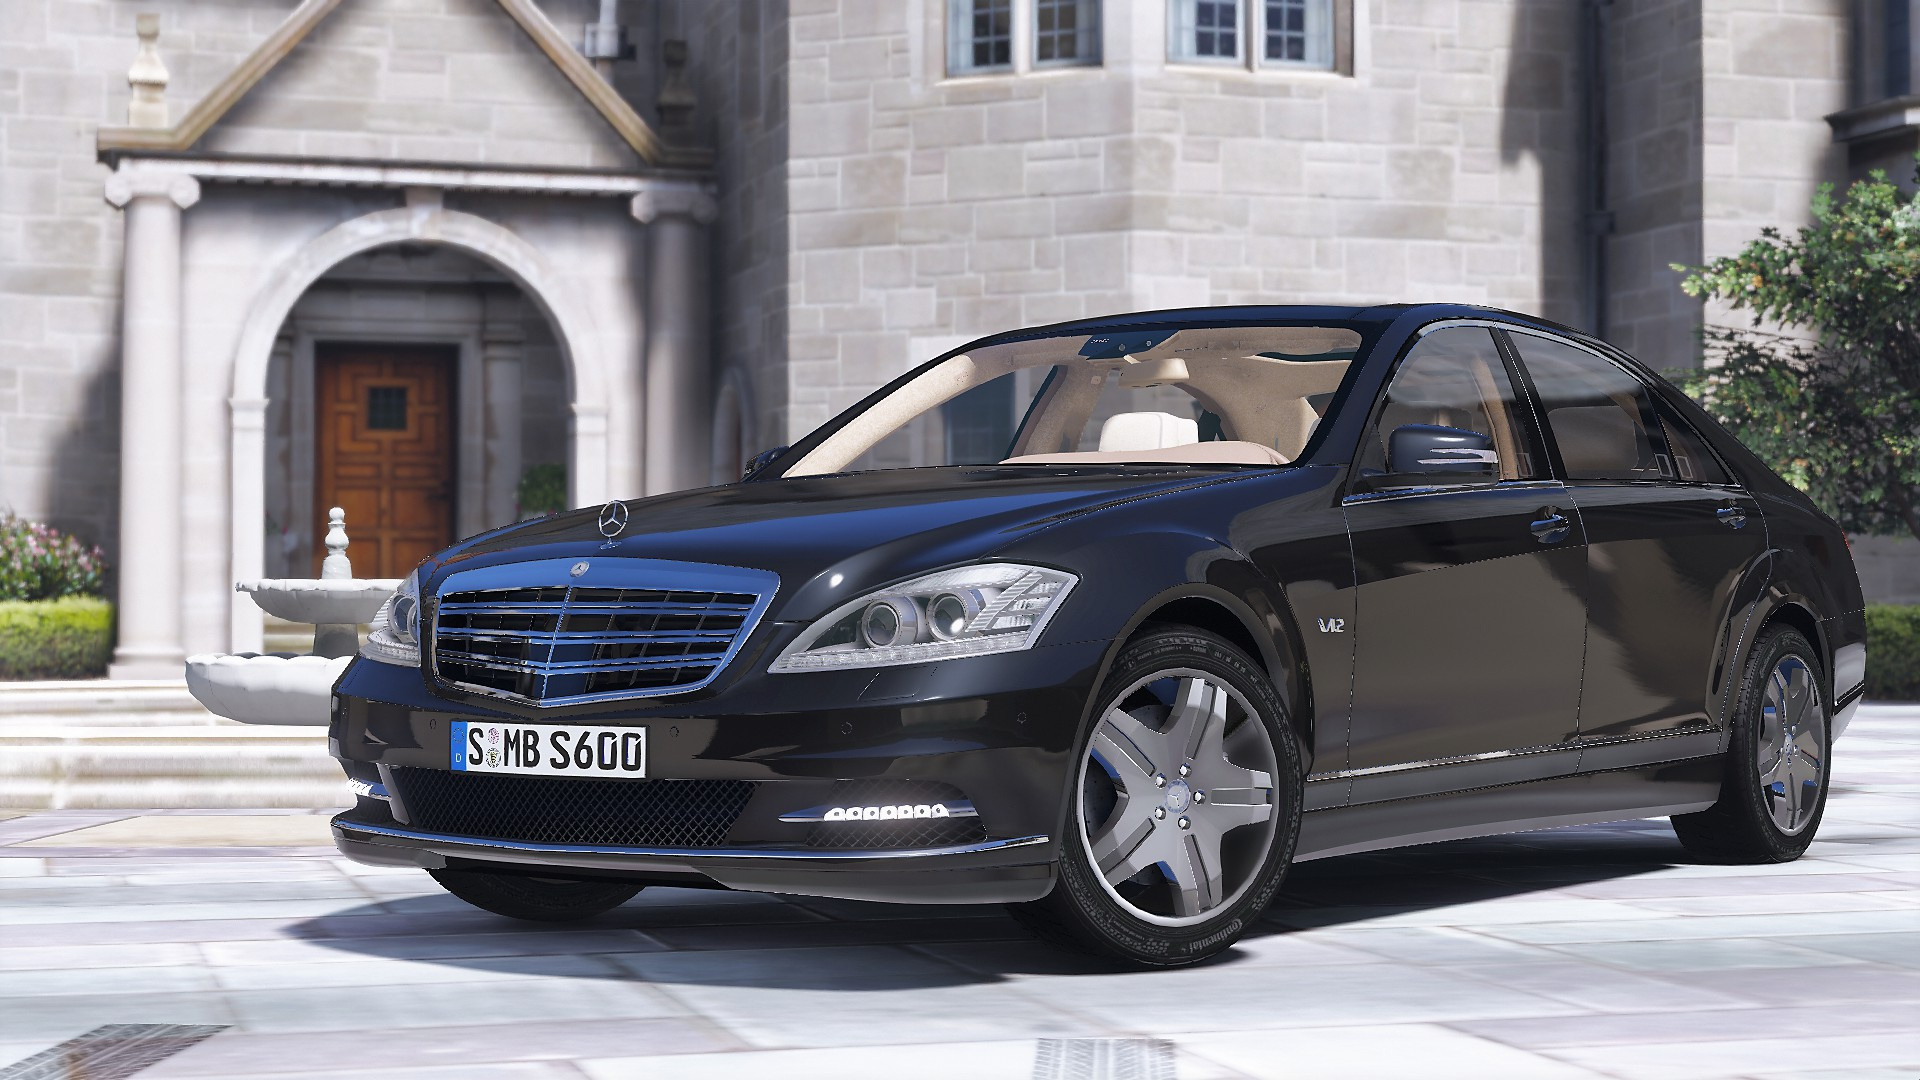 2010 mercedes benz s600 l w221 add on tuning gta5 for Mercedes benz 600